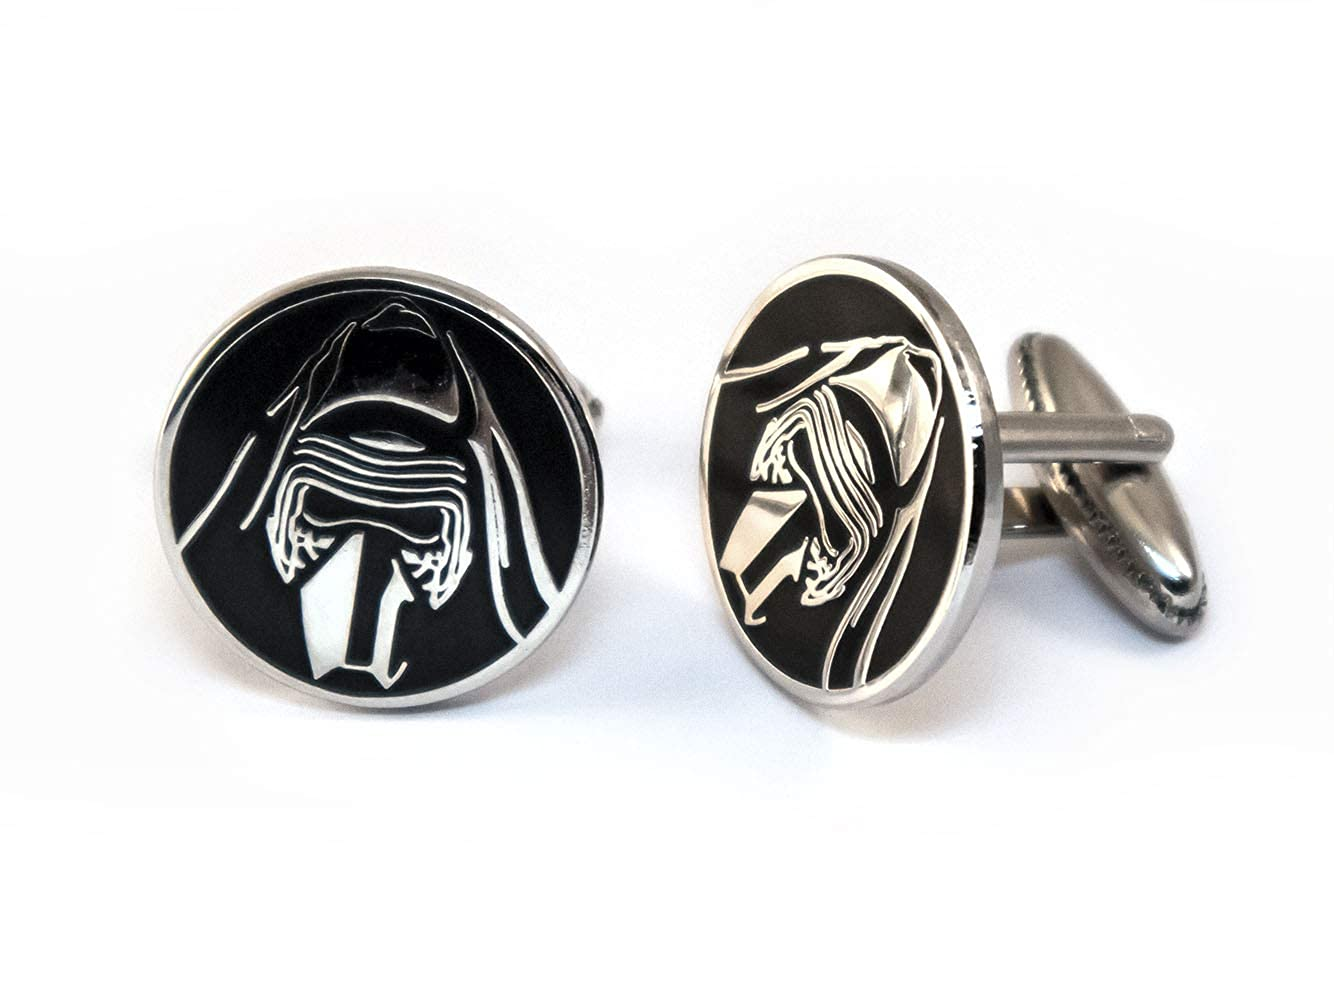 Darth Vader Cuff Links Jedi Tie Tack Jewelry SharedImagination Kylo Ren Cufflinks Star Wars Wedding Party Groomsman Gifts Star Wars Tie Clip Stormtrooper Death Star Gift